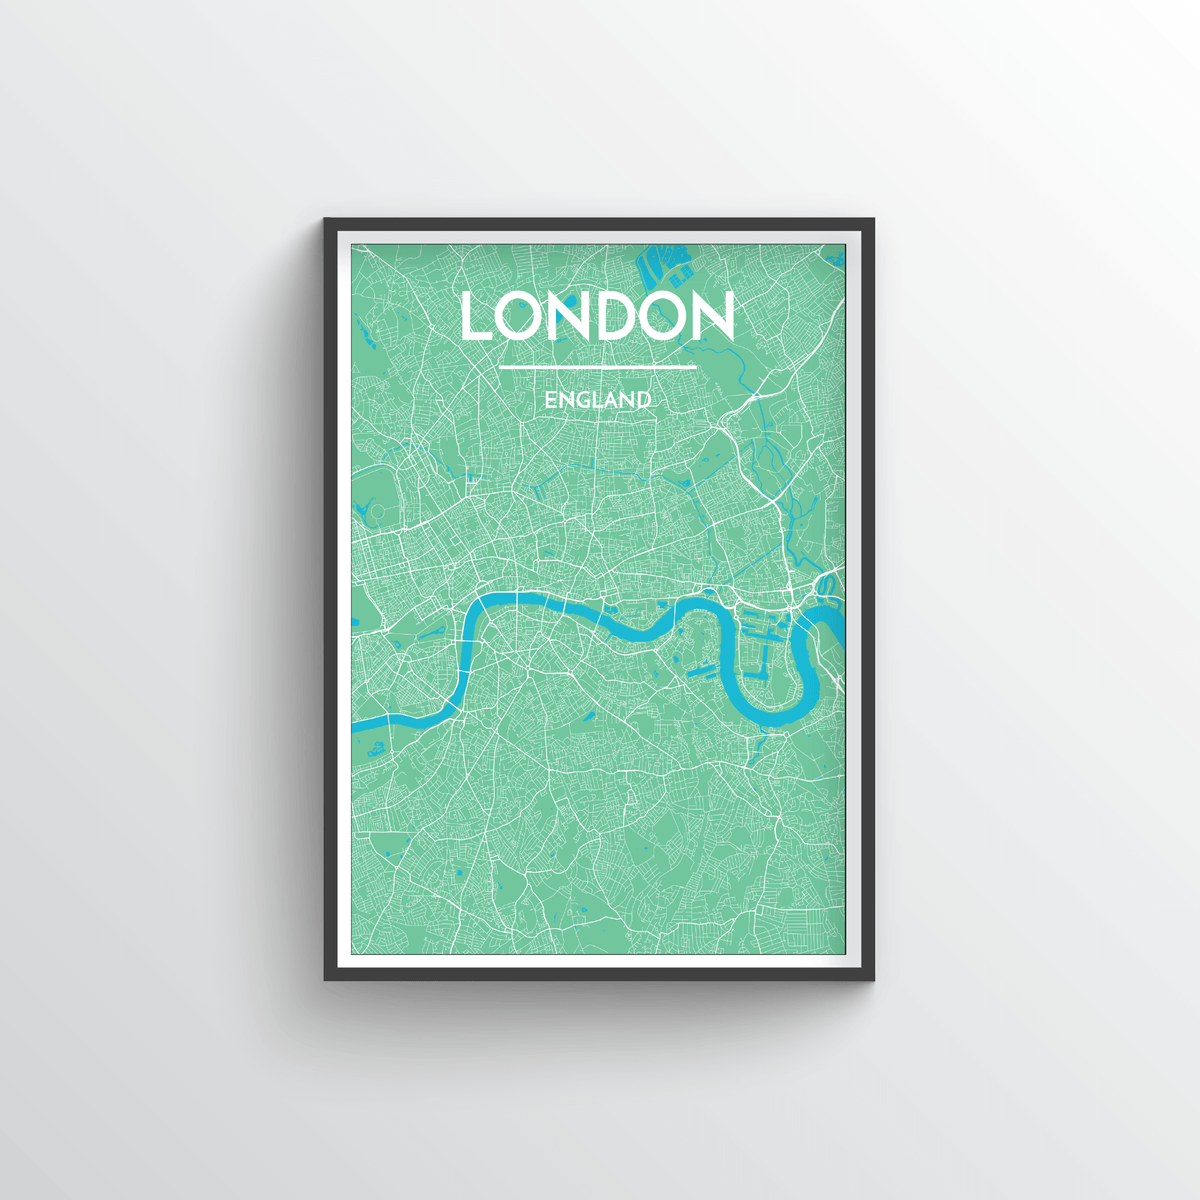 London City Map Art Print - Point Two Design - Black & White Print